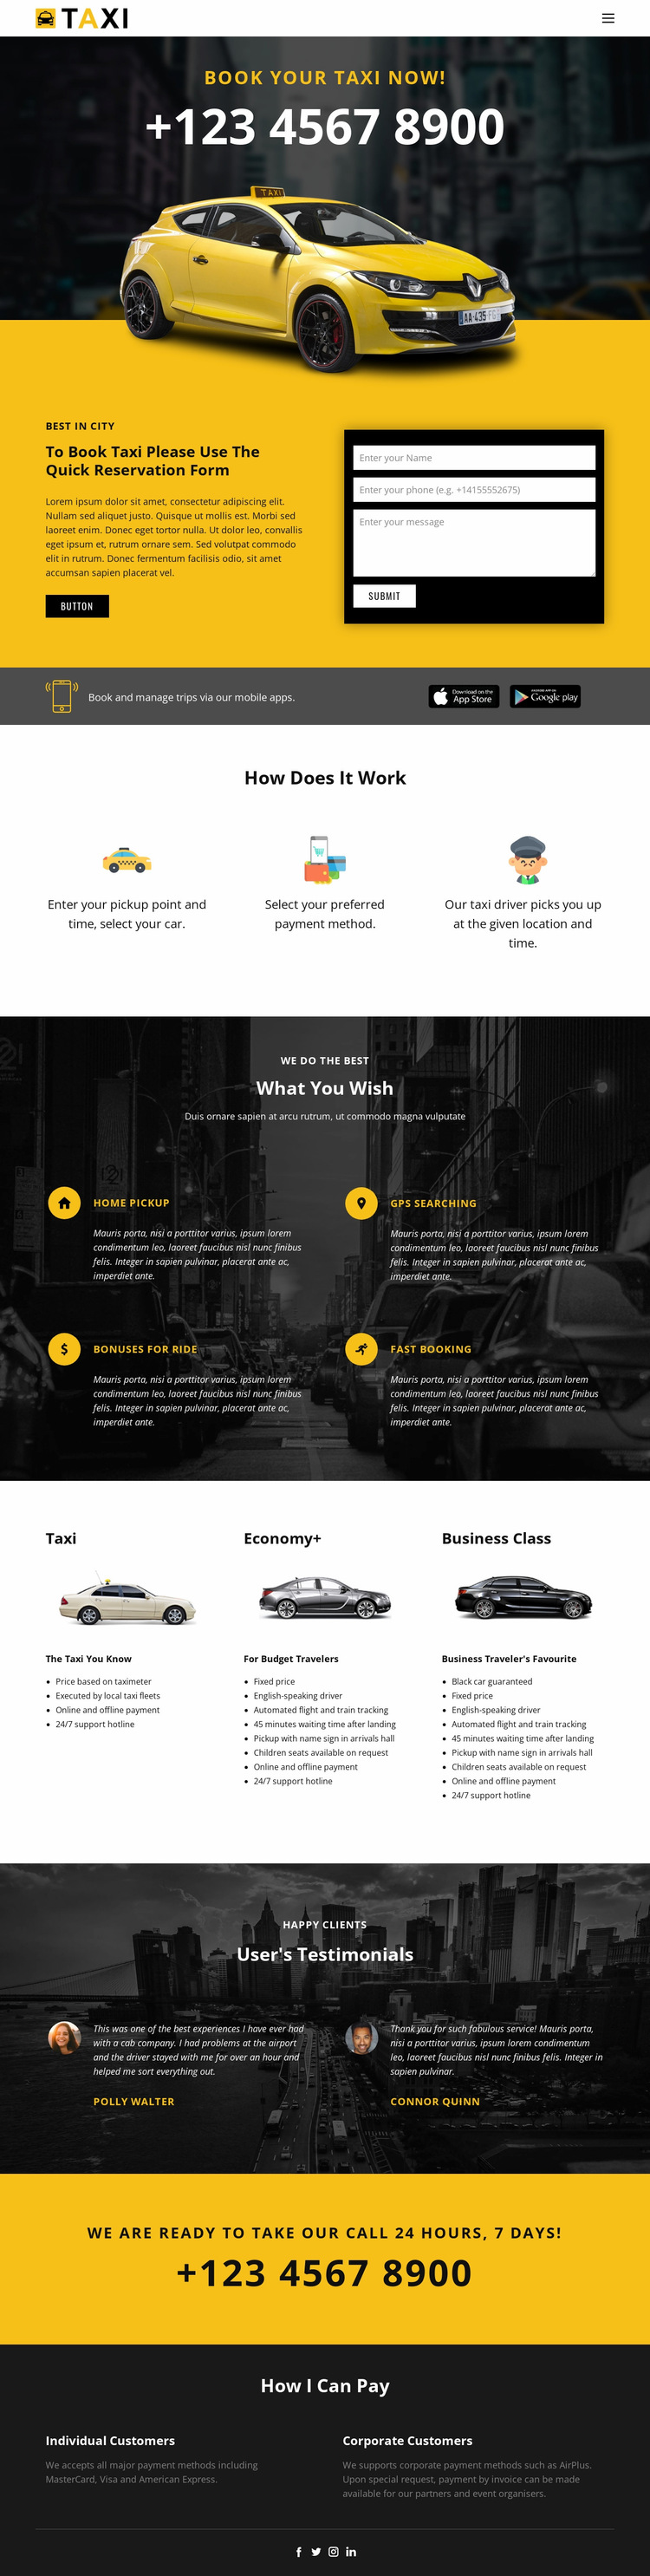 Fastest taxi cars Website Builder